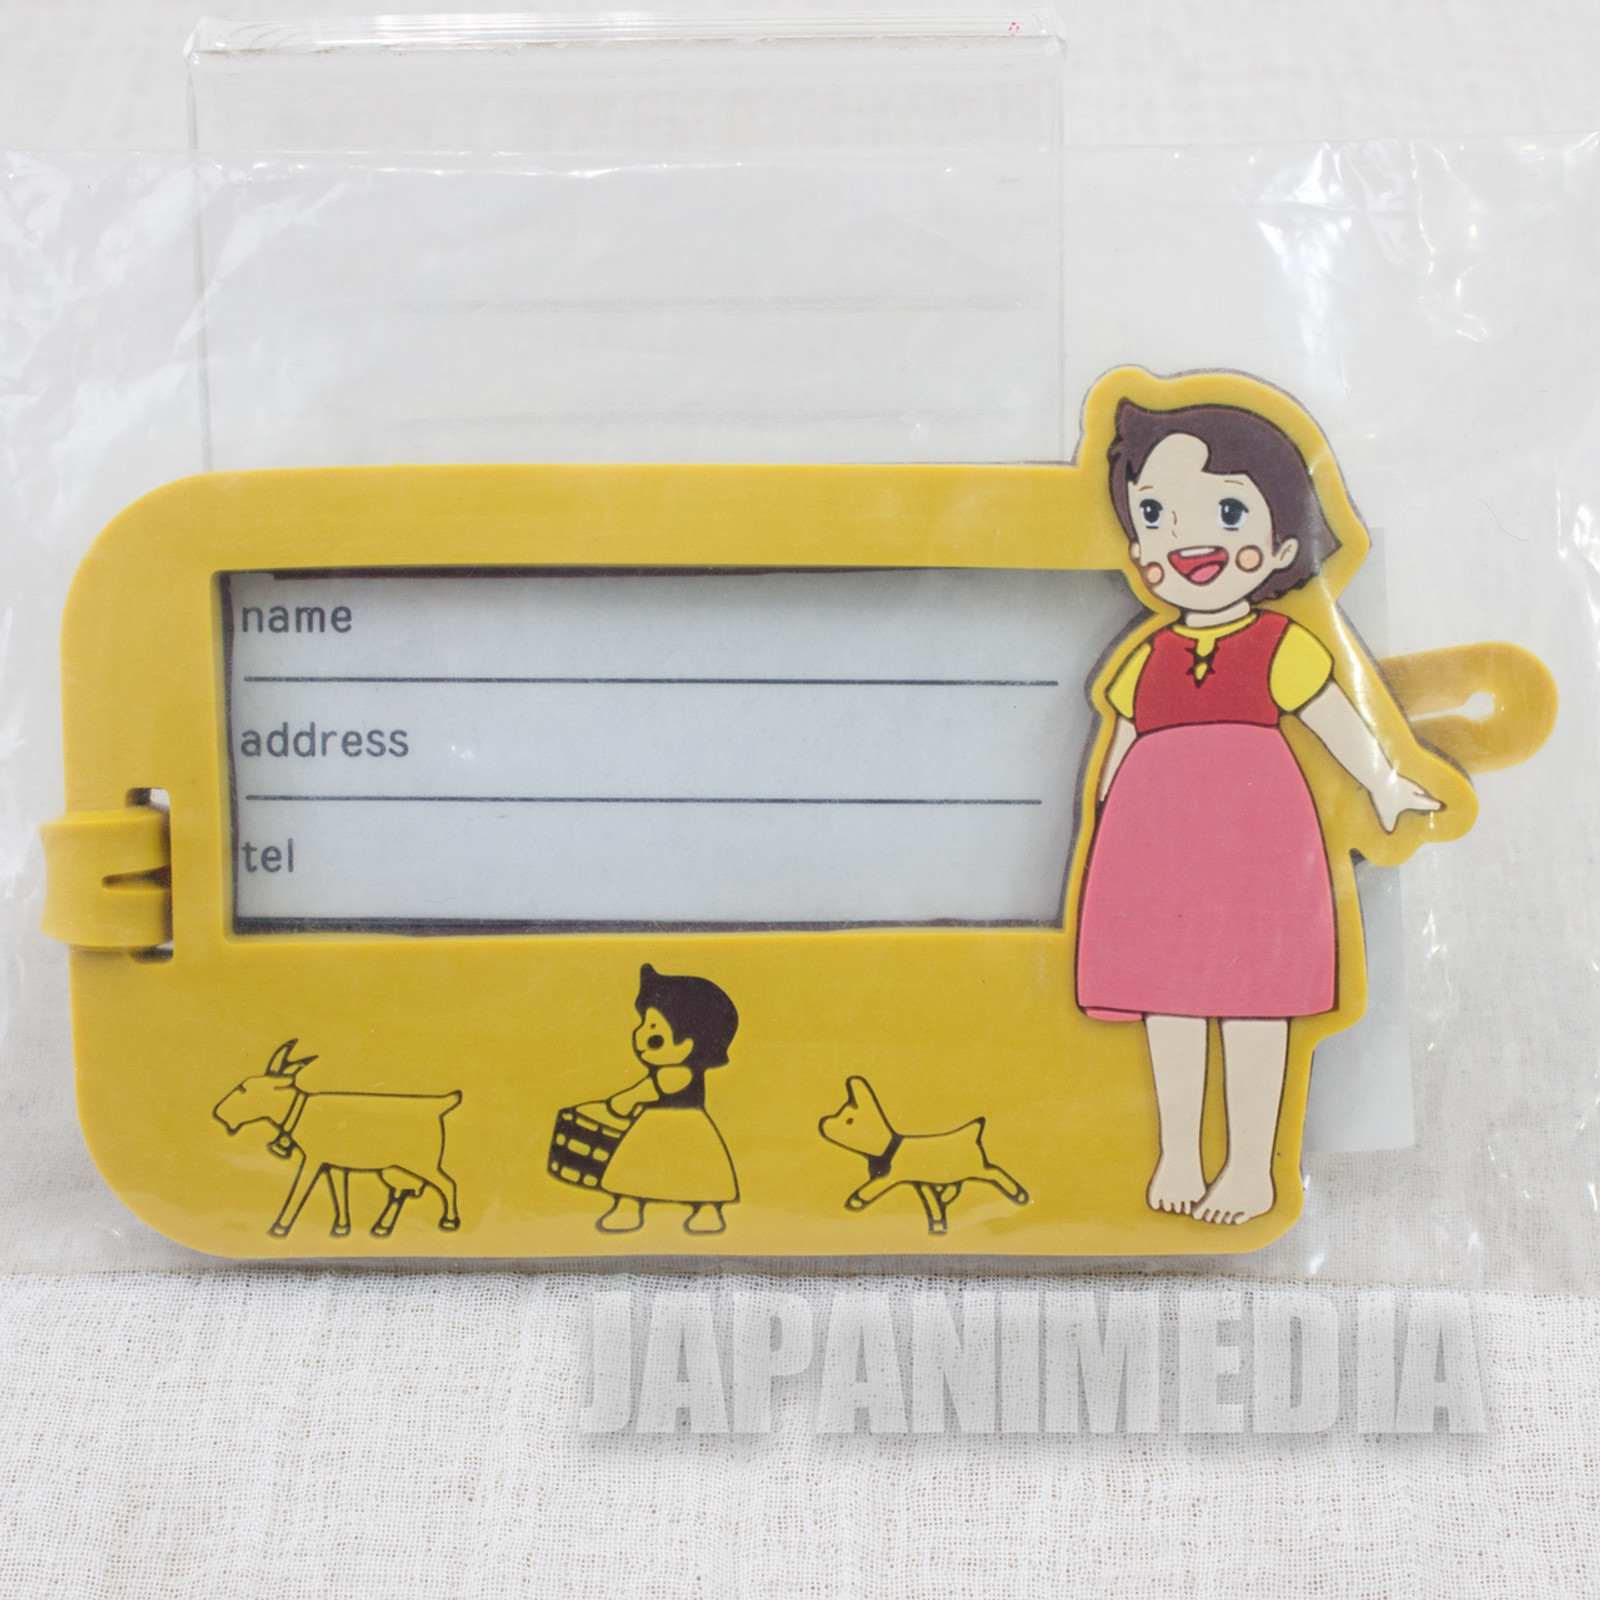 Heidi Girl of the Alps Rubber Name Plate Holder Yellow JAPAN ANIME